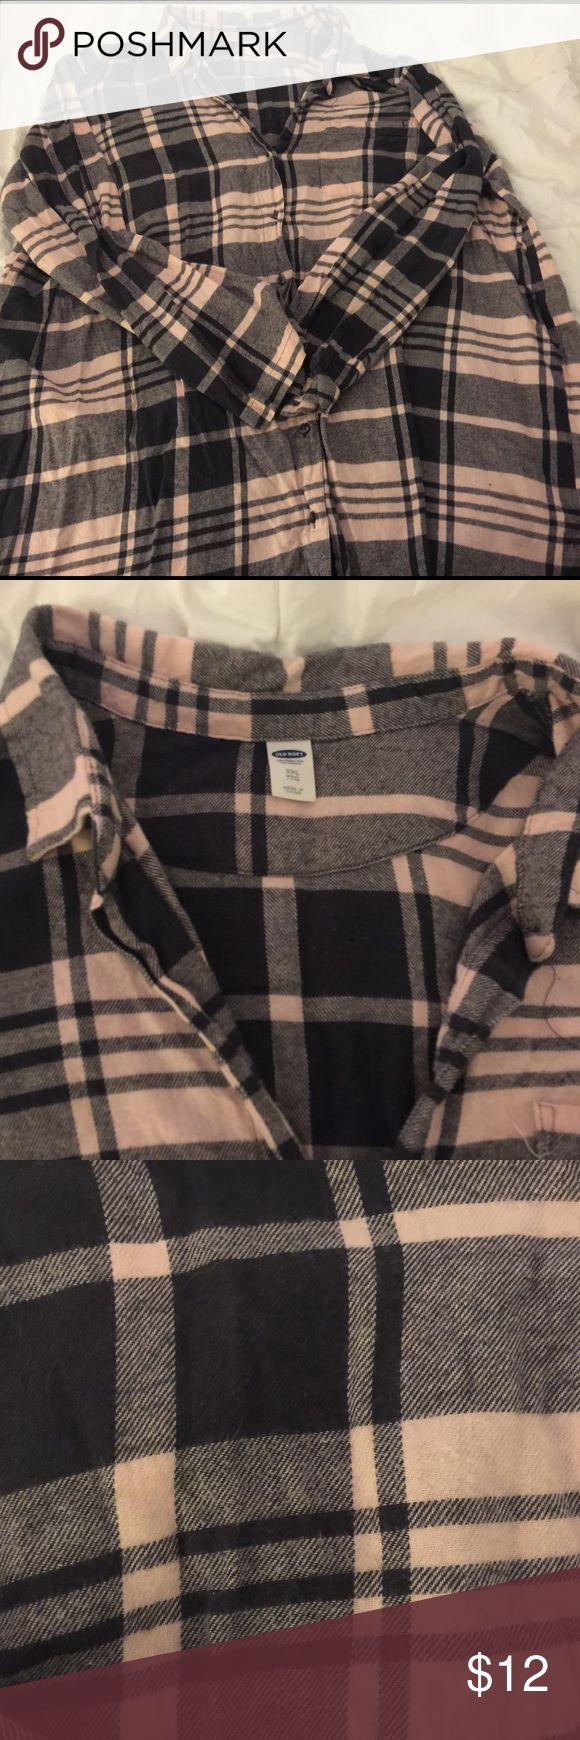 Old Navy XXL Flannel Tunic shirt, size XXL Old Navy Tunic Shirt. Worn only once. Washed and hung to dry. Blue and light pink flannel. Super soft & comfy. Size XXL Old Navy Tops Tunics